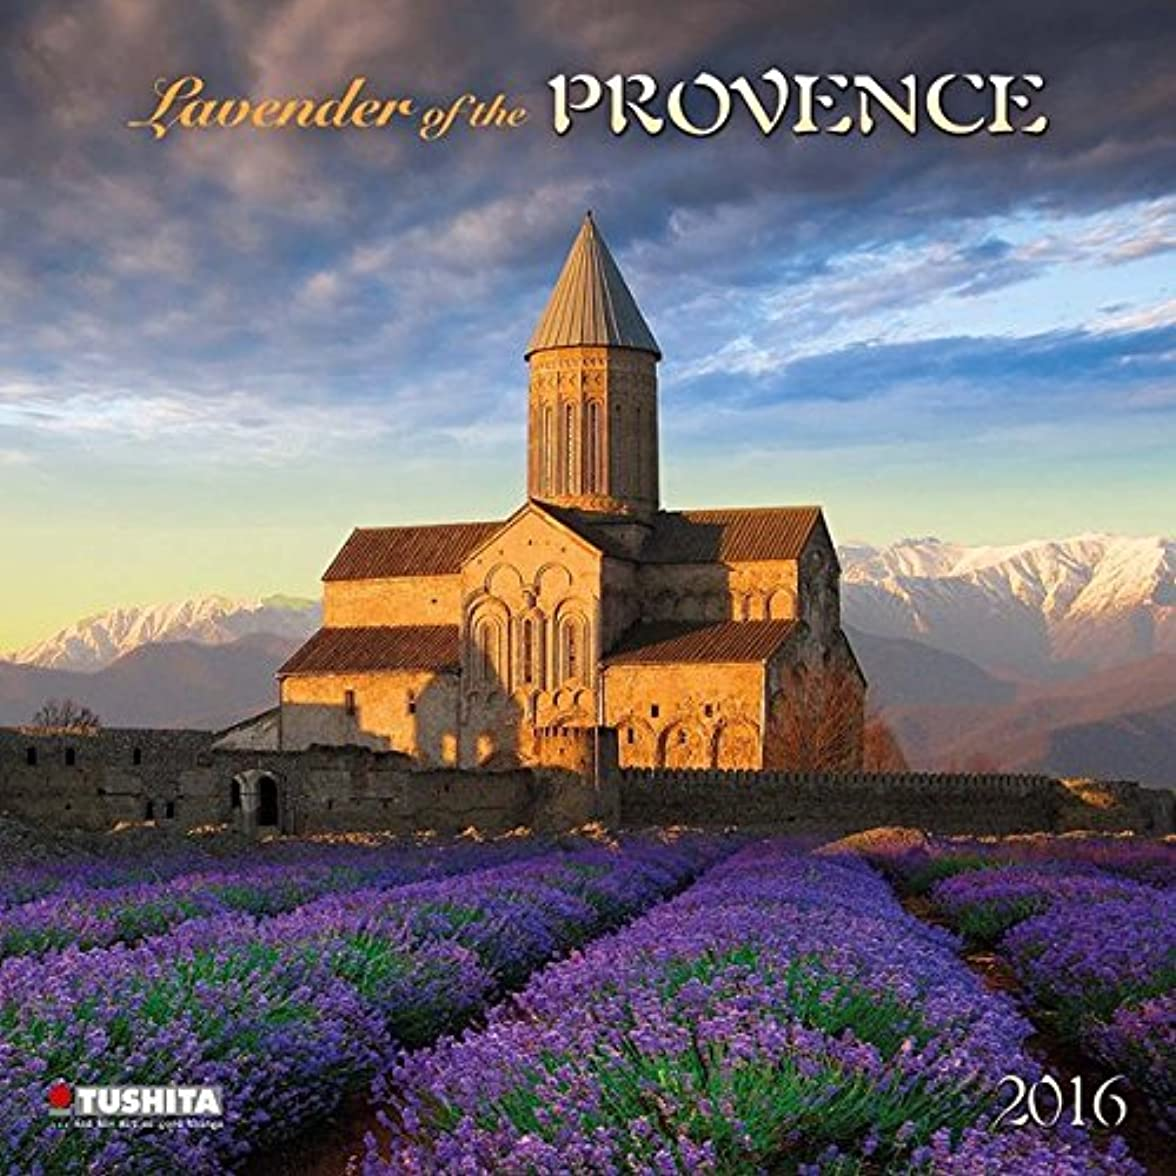 ペリスコープ仮説練るLavender of the Provence 2016 (What a Wonderful World)